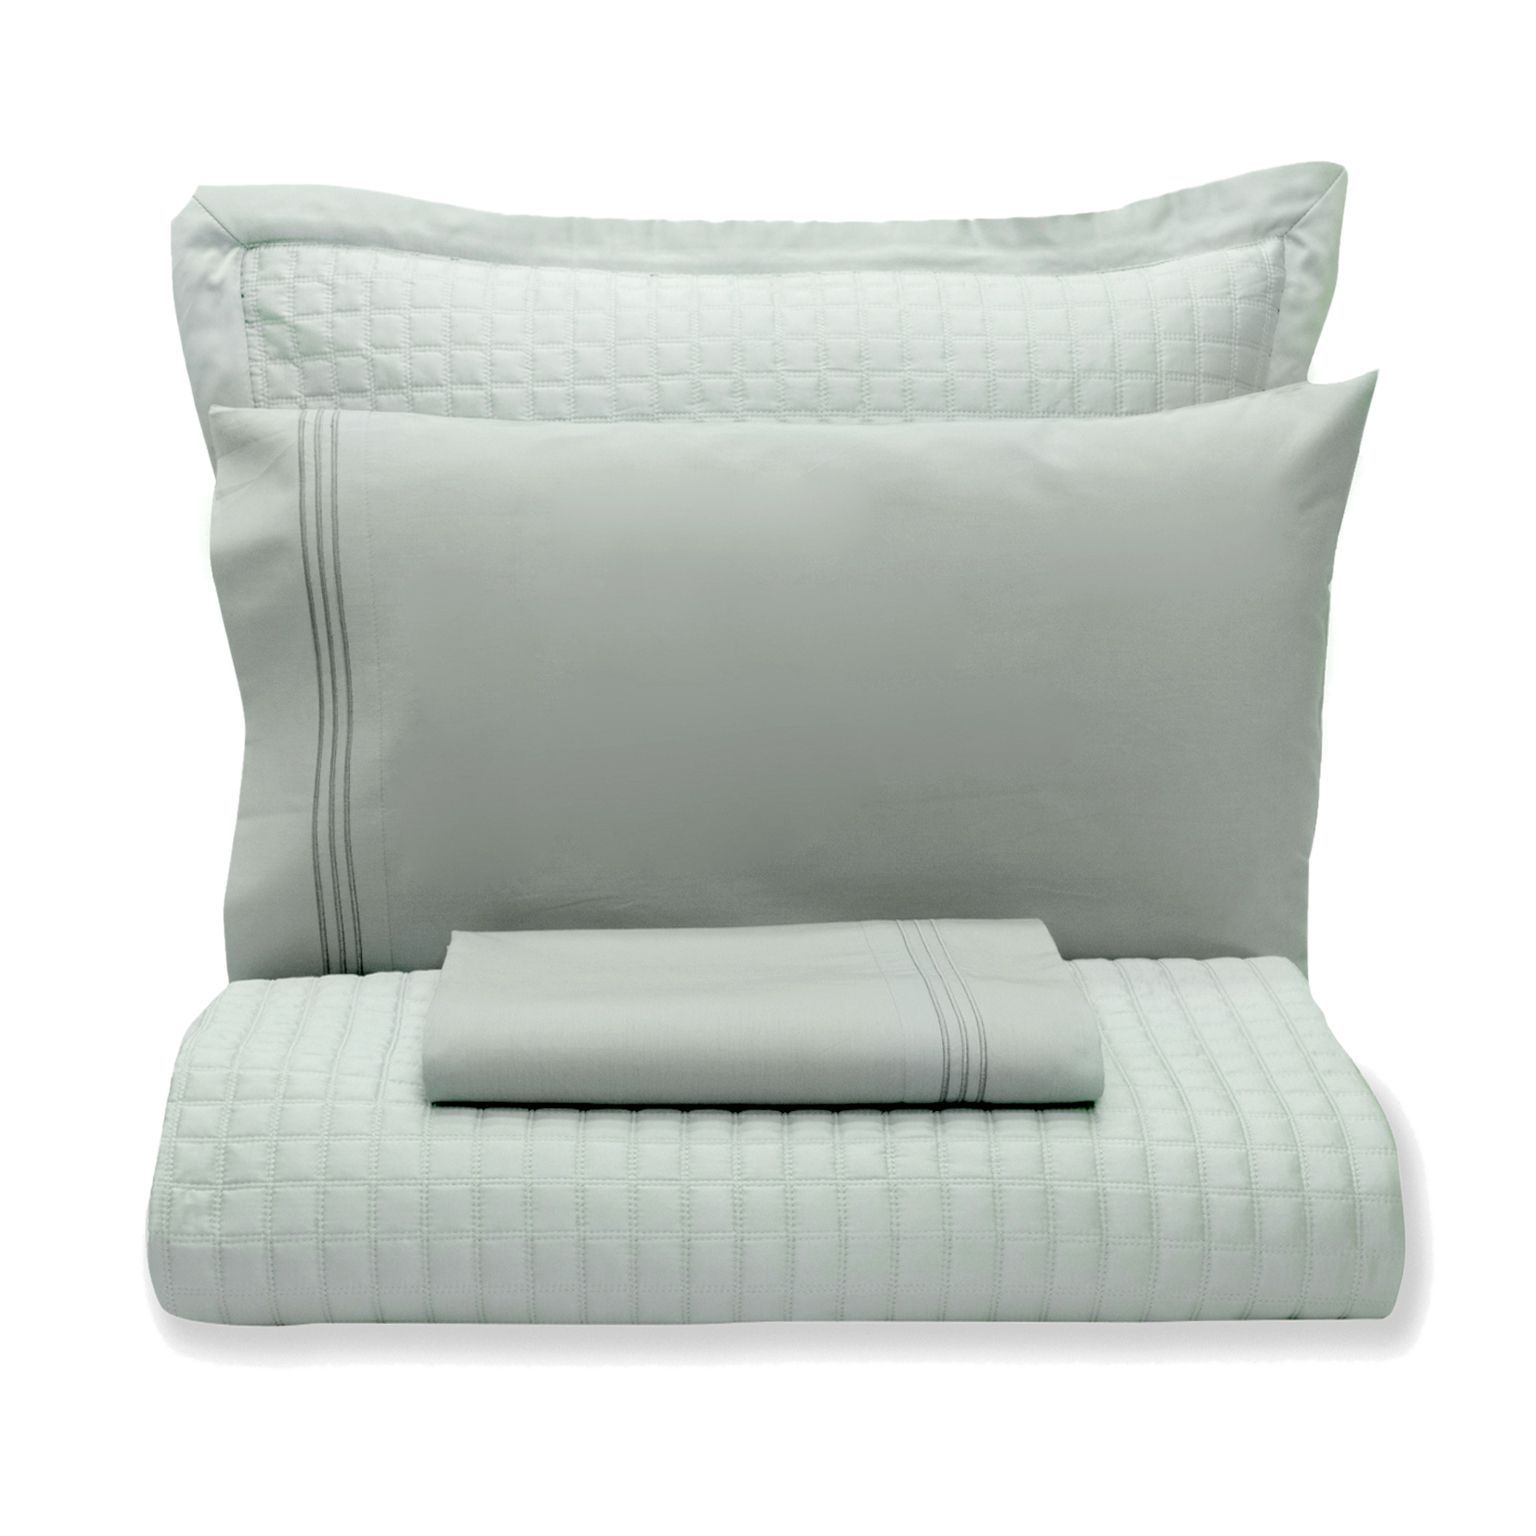 Kit Cama One for All